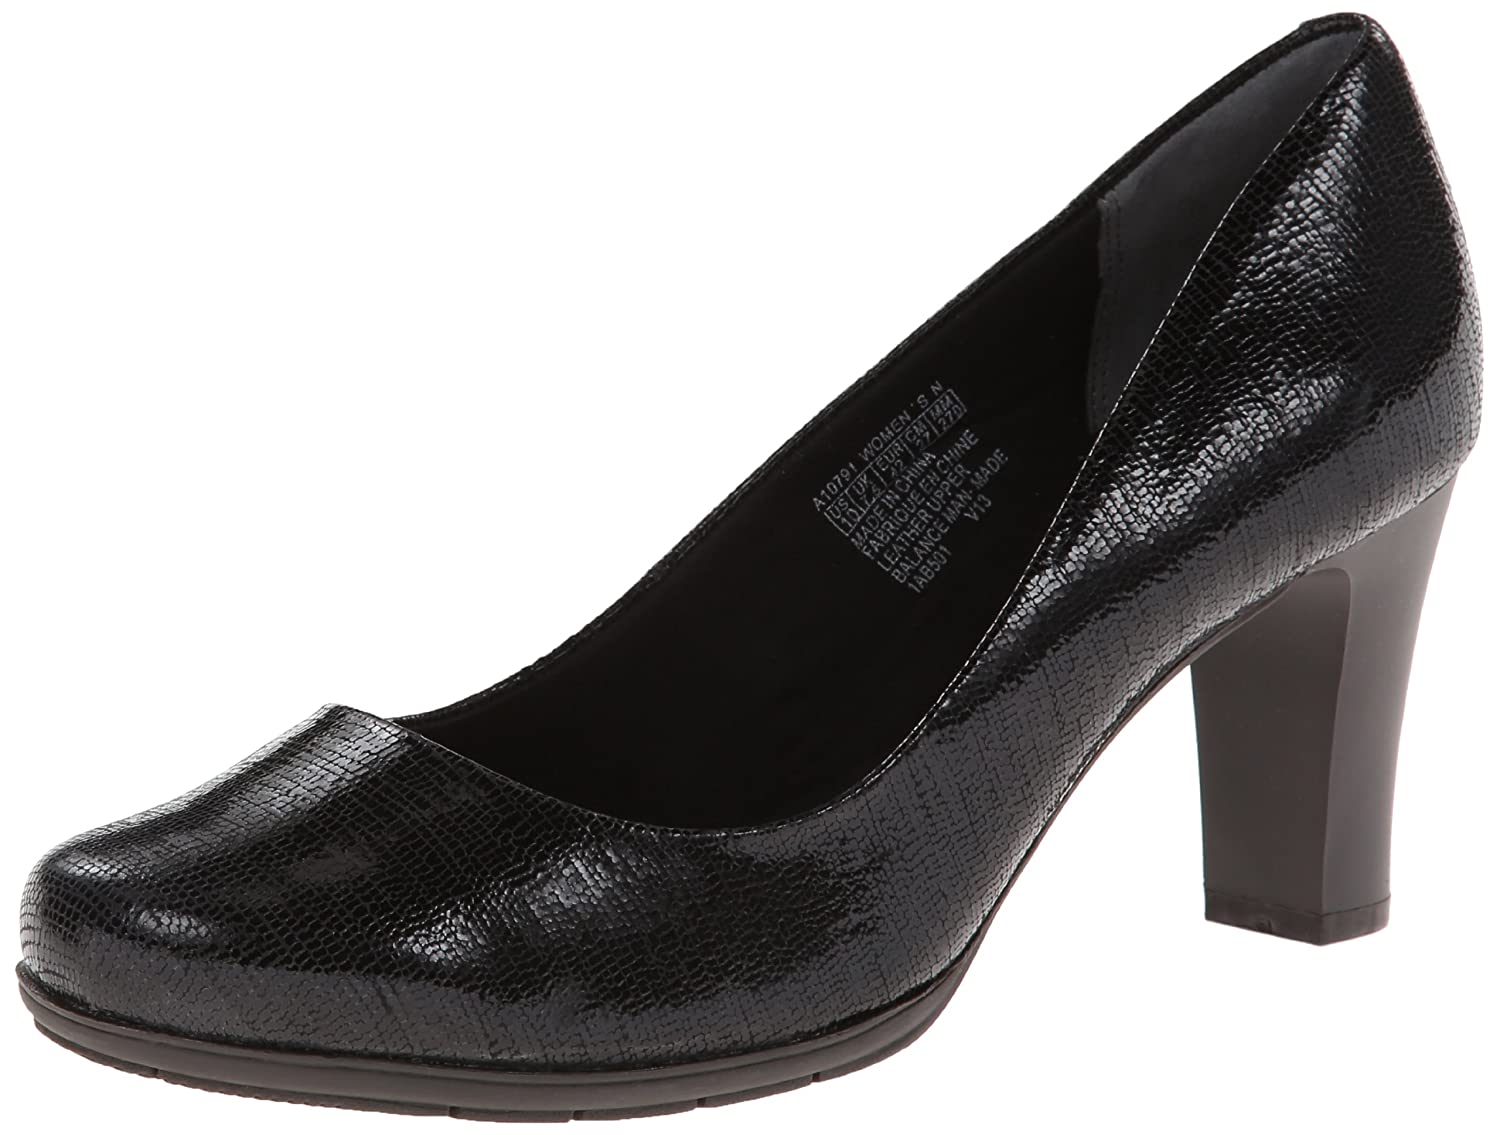 Black Foil Leather Rockport Women's Total Motion Pump